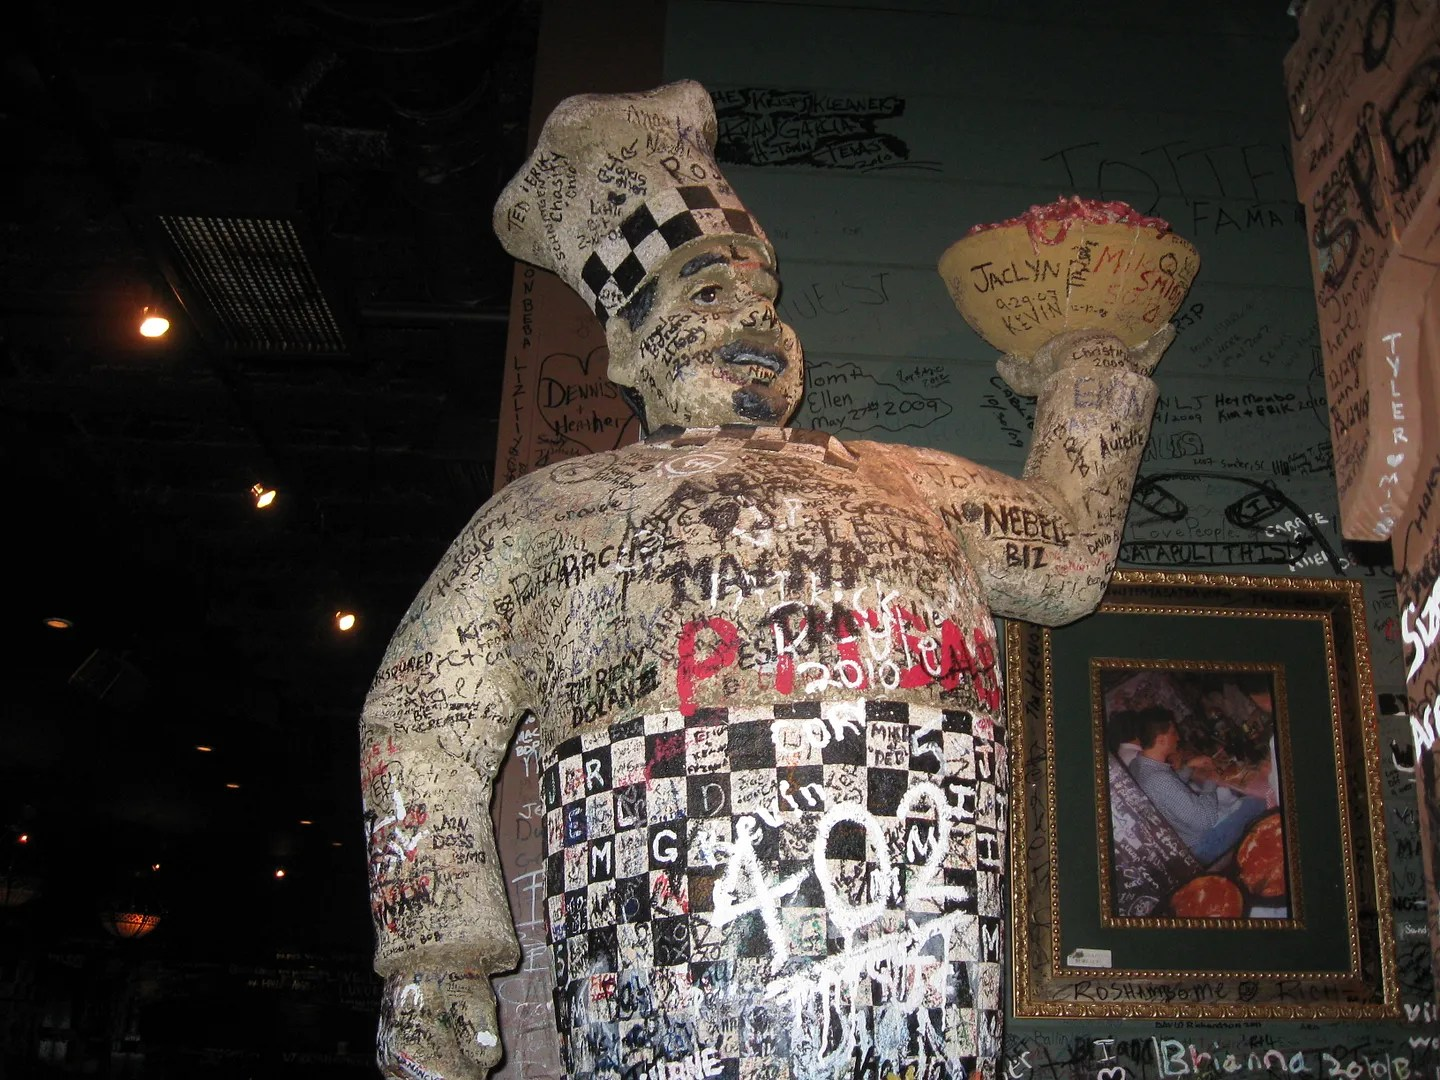 Gino's Pizza, Chicago